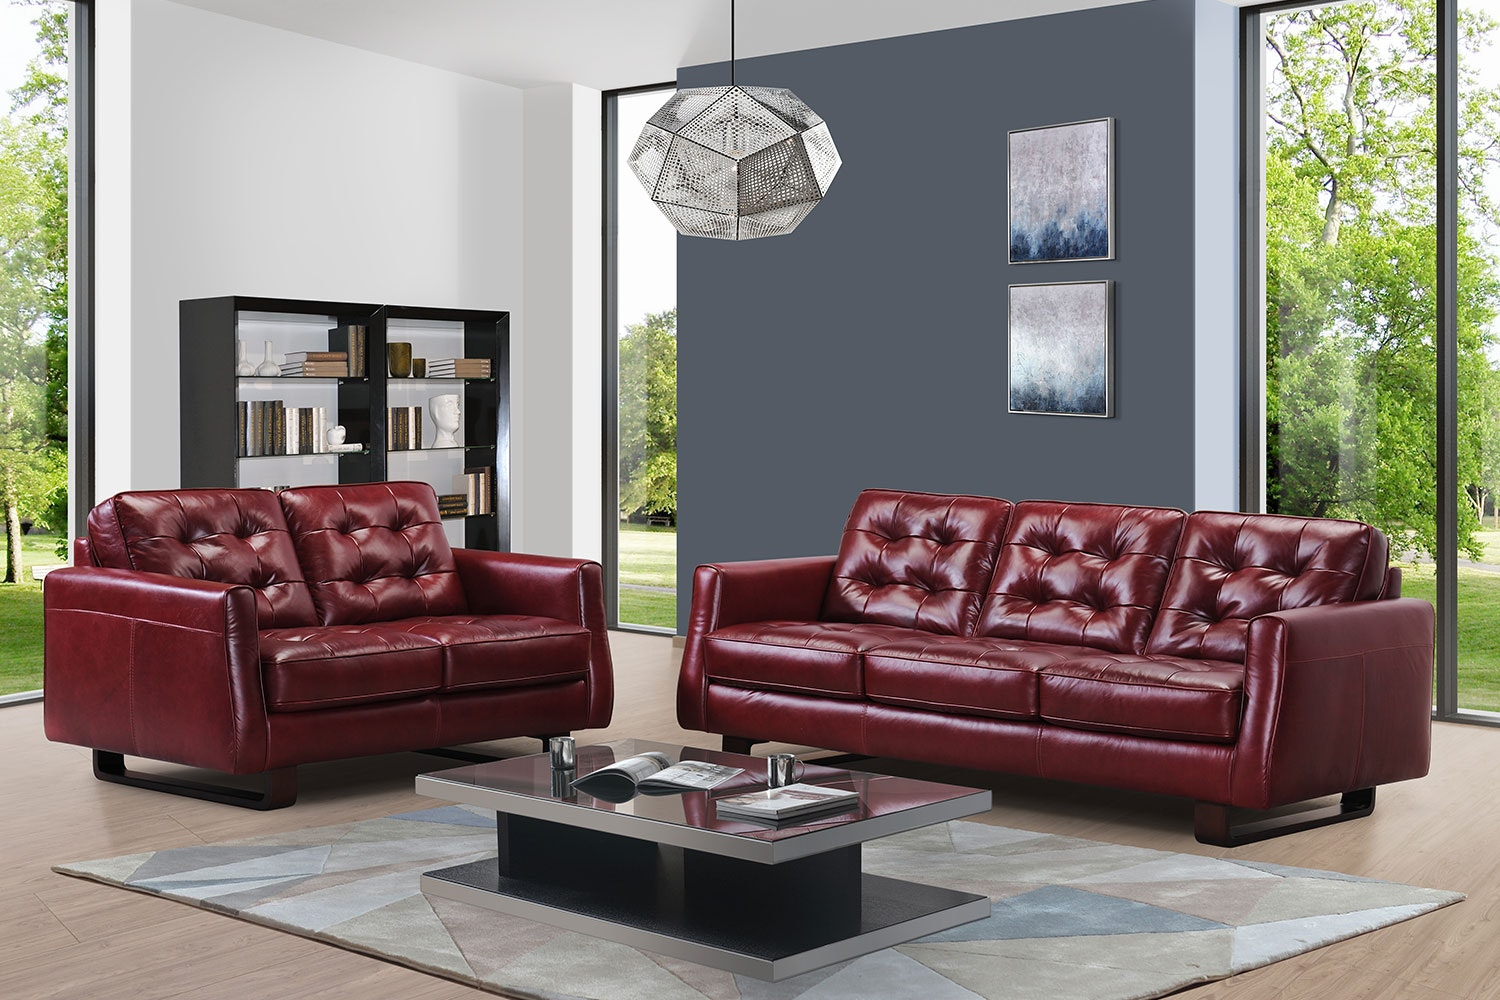 Novara 2 Piece Leather Suite - Debonaire Furniture